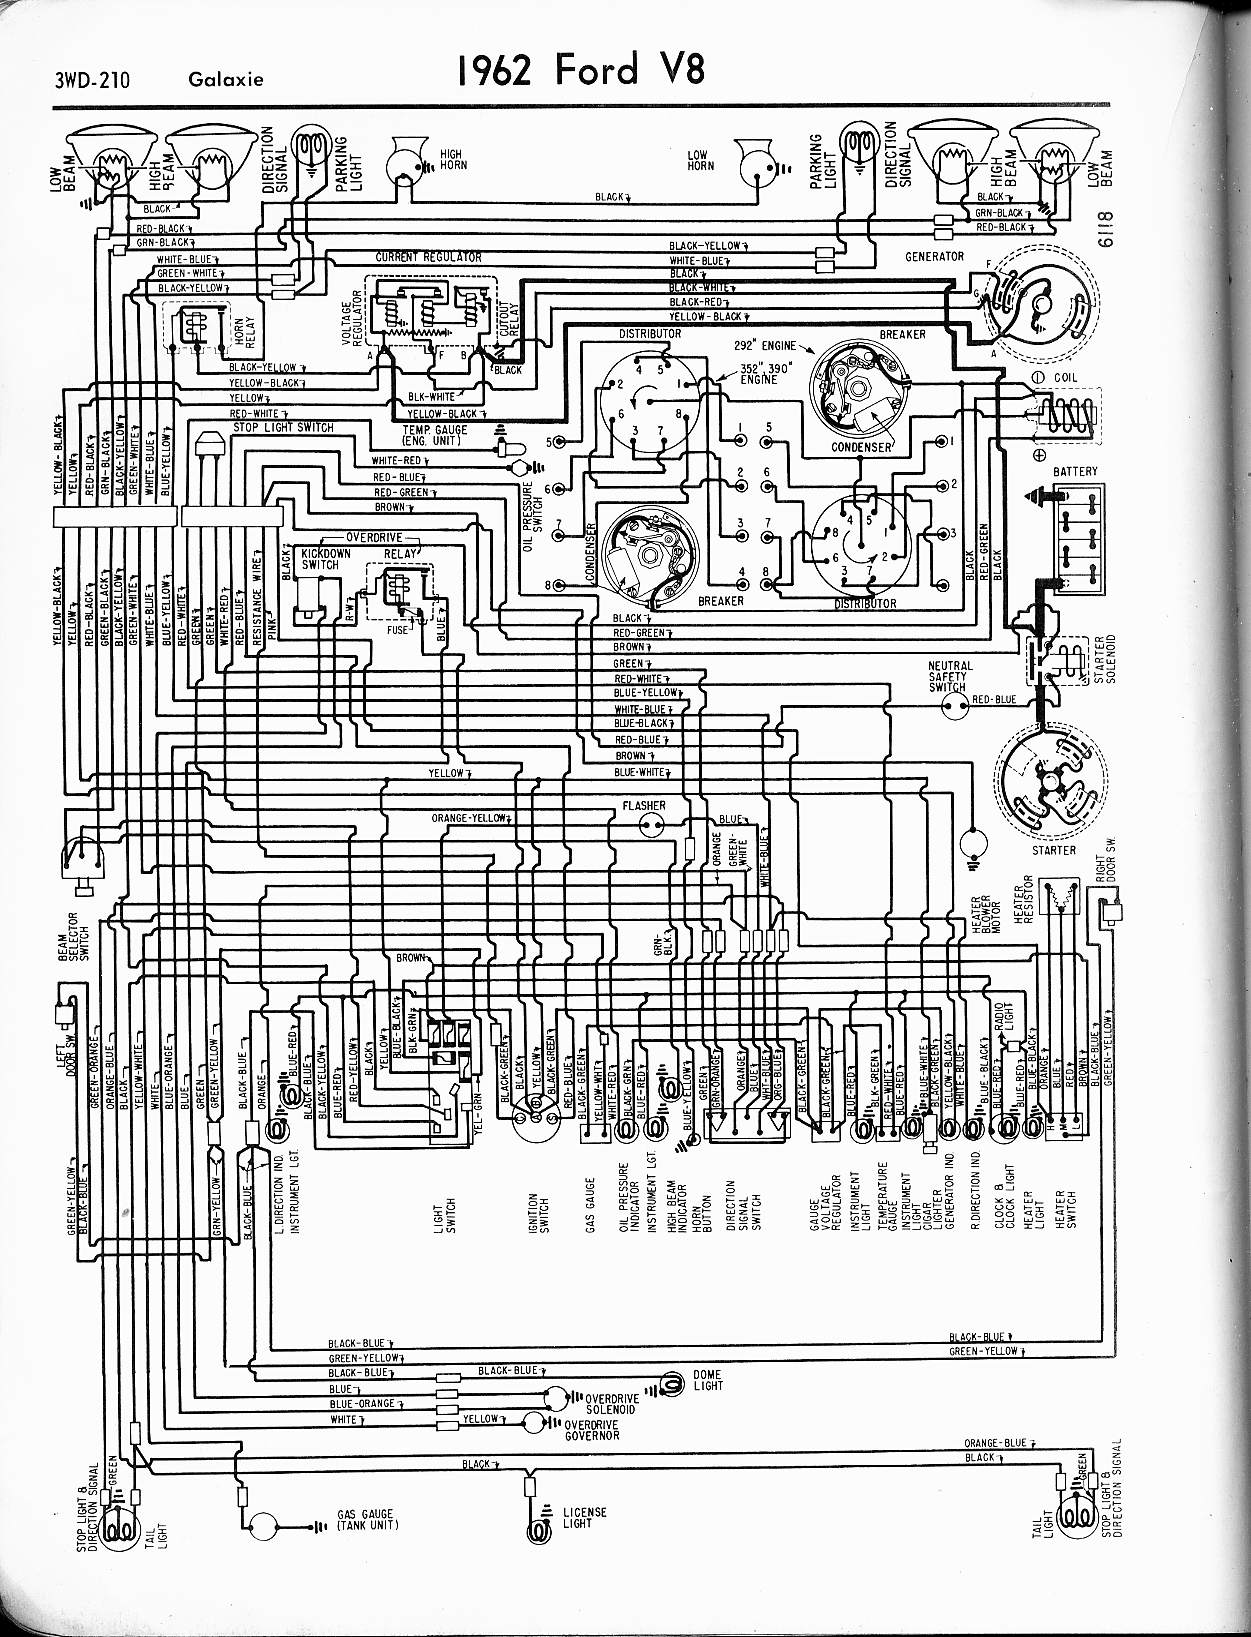 970 1962 Ford Thunderbird Wiring Diagram | Wiring ResourcesWiring Resources